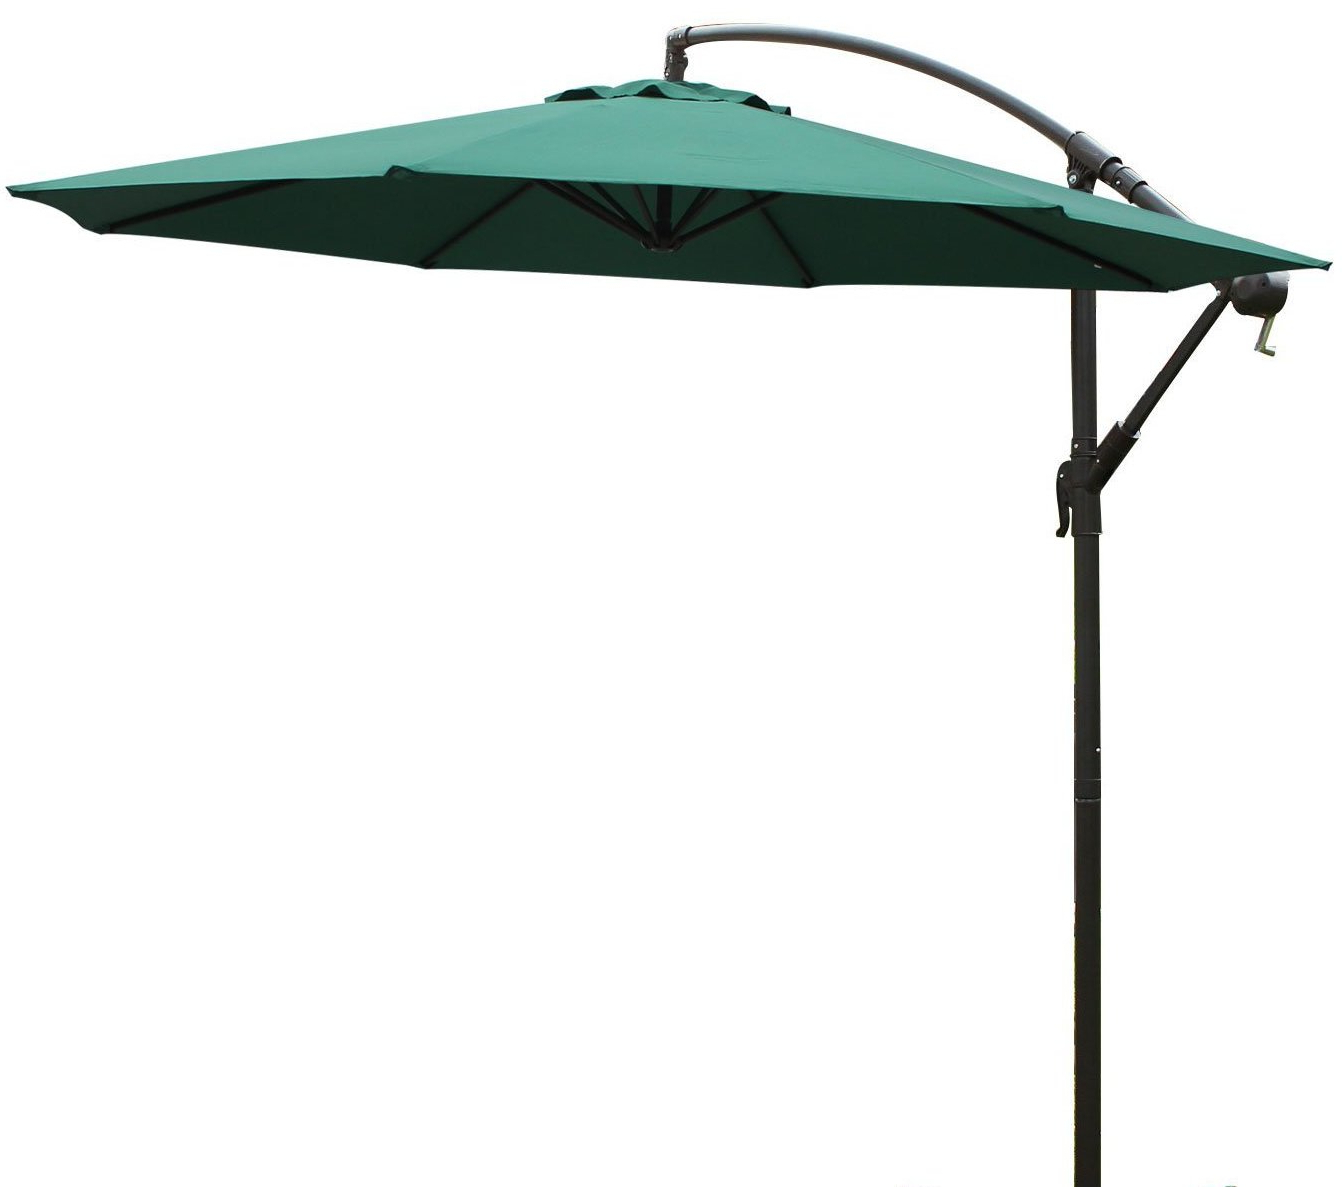 10' Cantilever Umbrella Intended For Current Tallulah Sunshade Hanging Outdoor Cantilever Umbrellas (View 1 of 20)